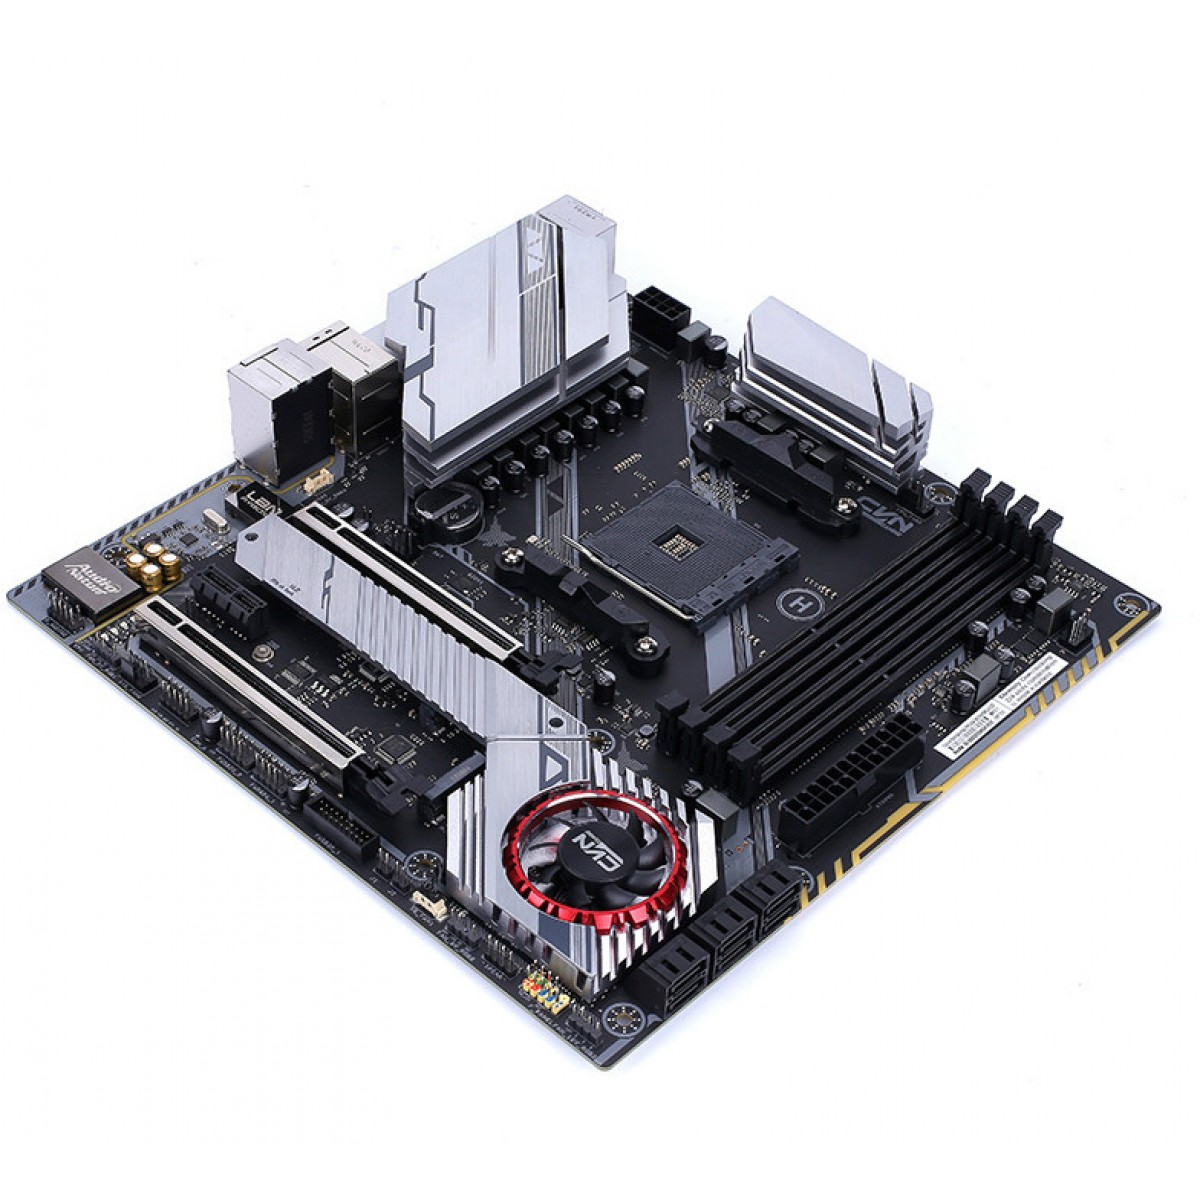 Placa Mãe Colorful CVN X570M Gaming Pro V14, Chipset X570, AMD AM4, mATX, DDR4